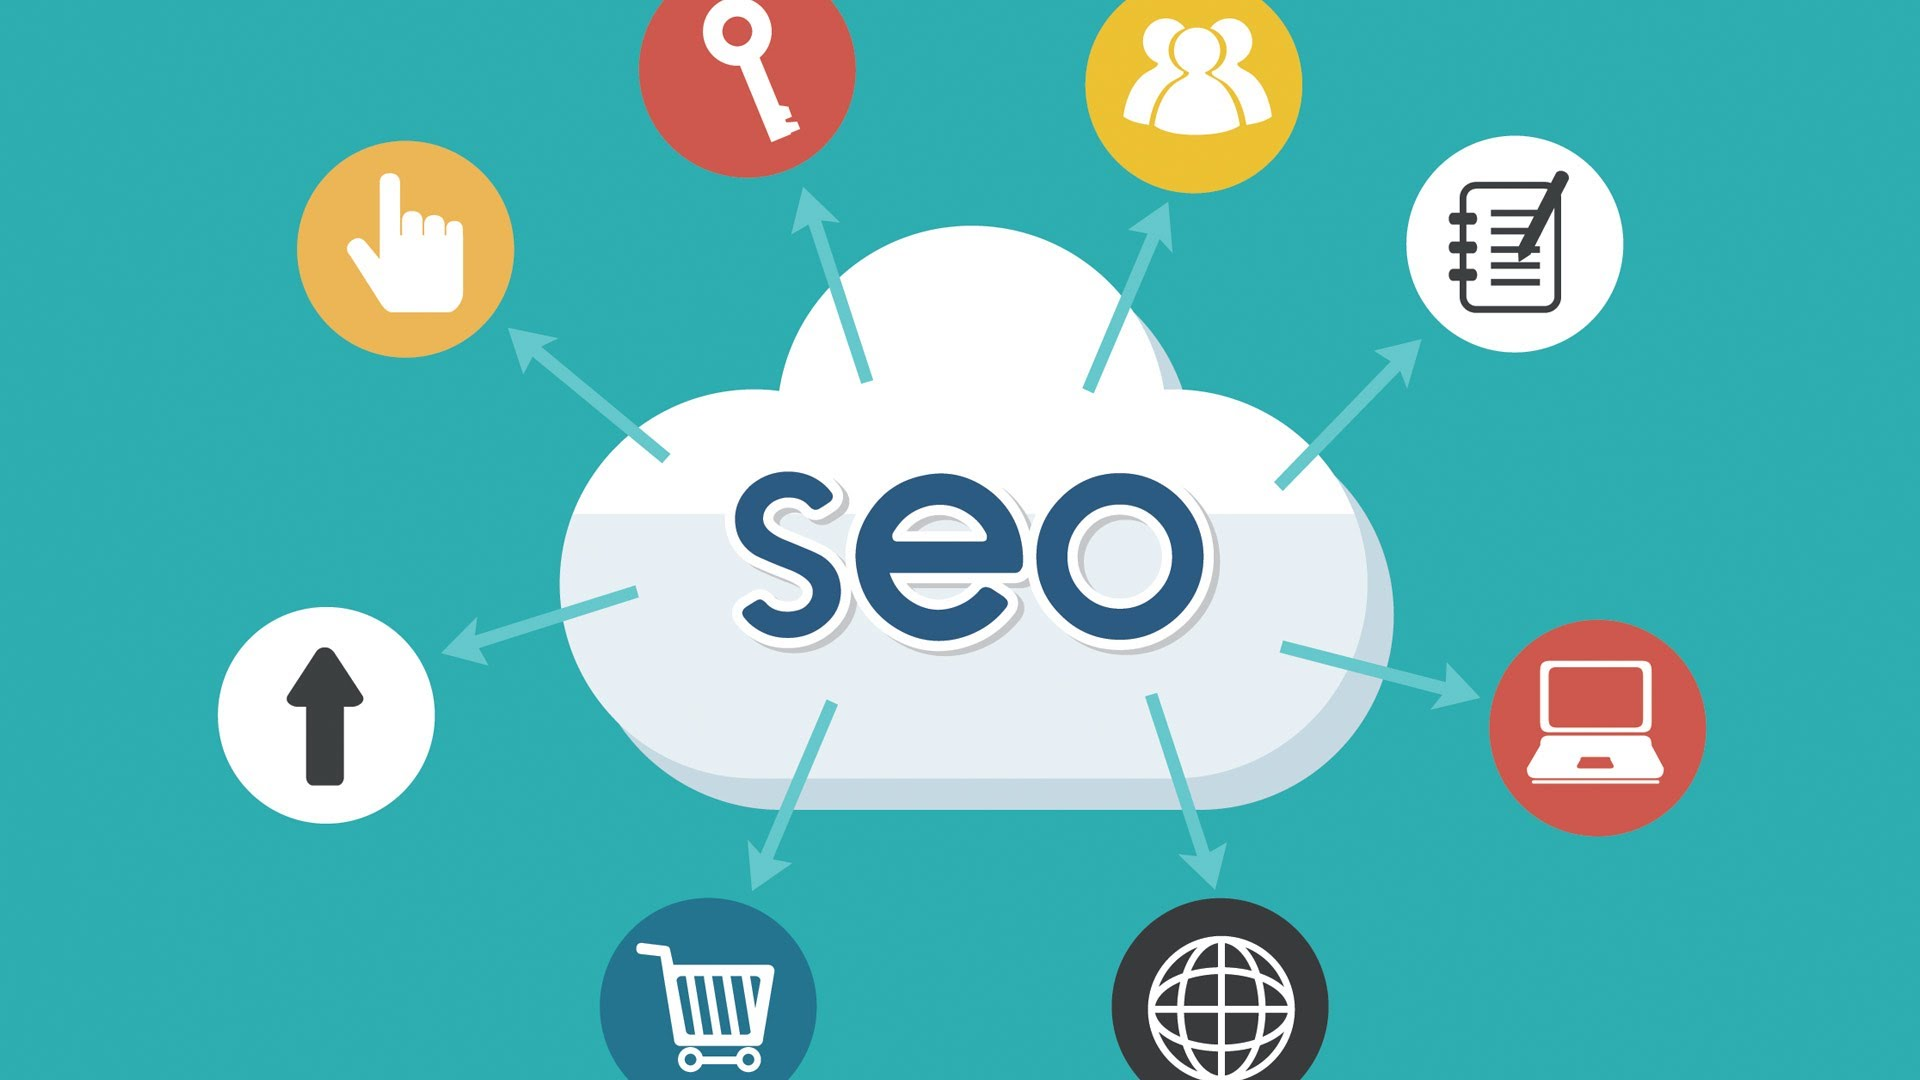 I will create a full SEO campaign for your website